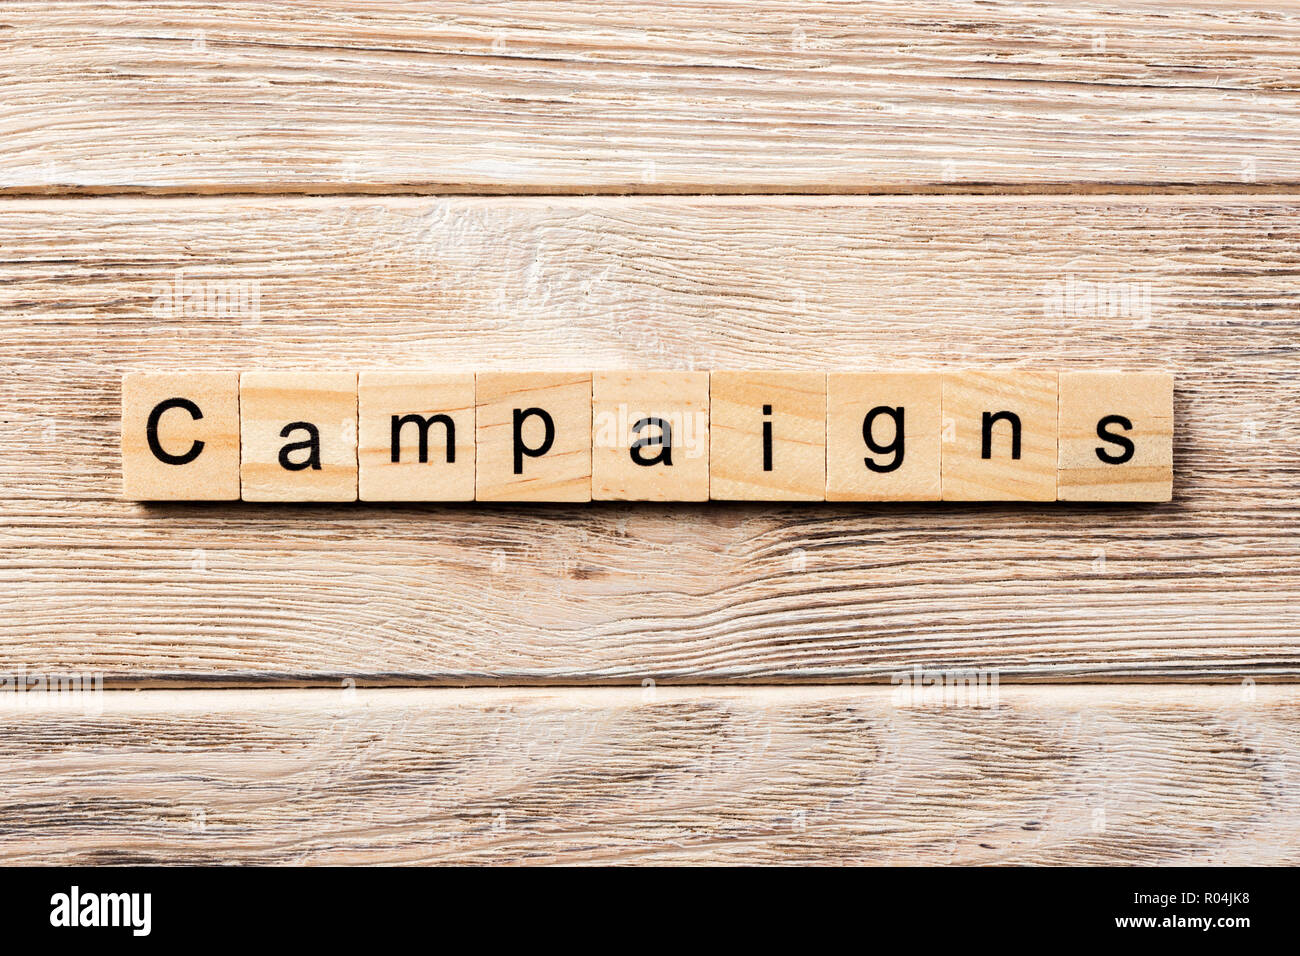 campaign word written on wood block. campaign text on table, concept. - Stock Image